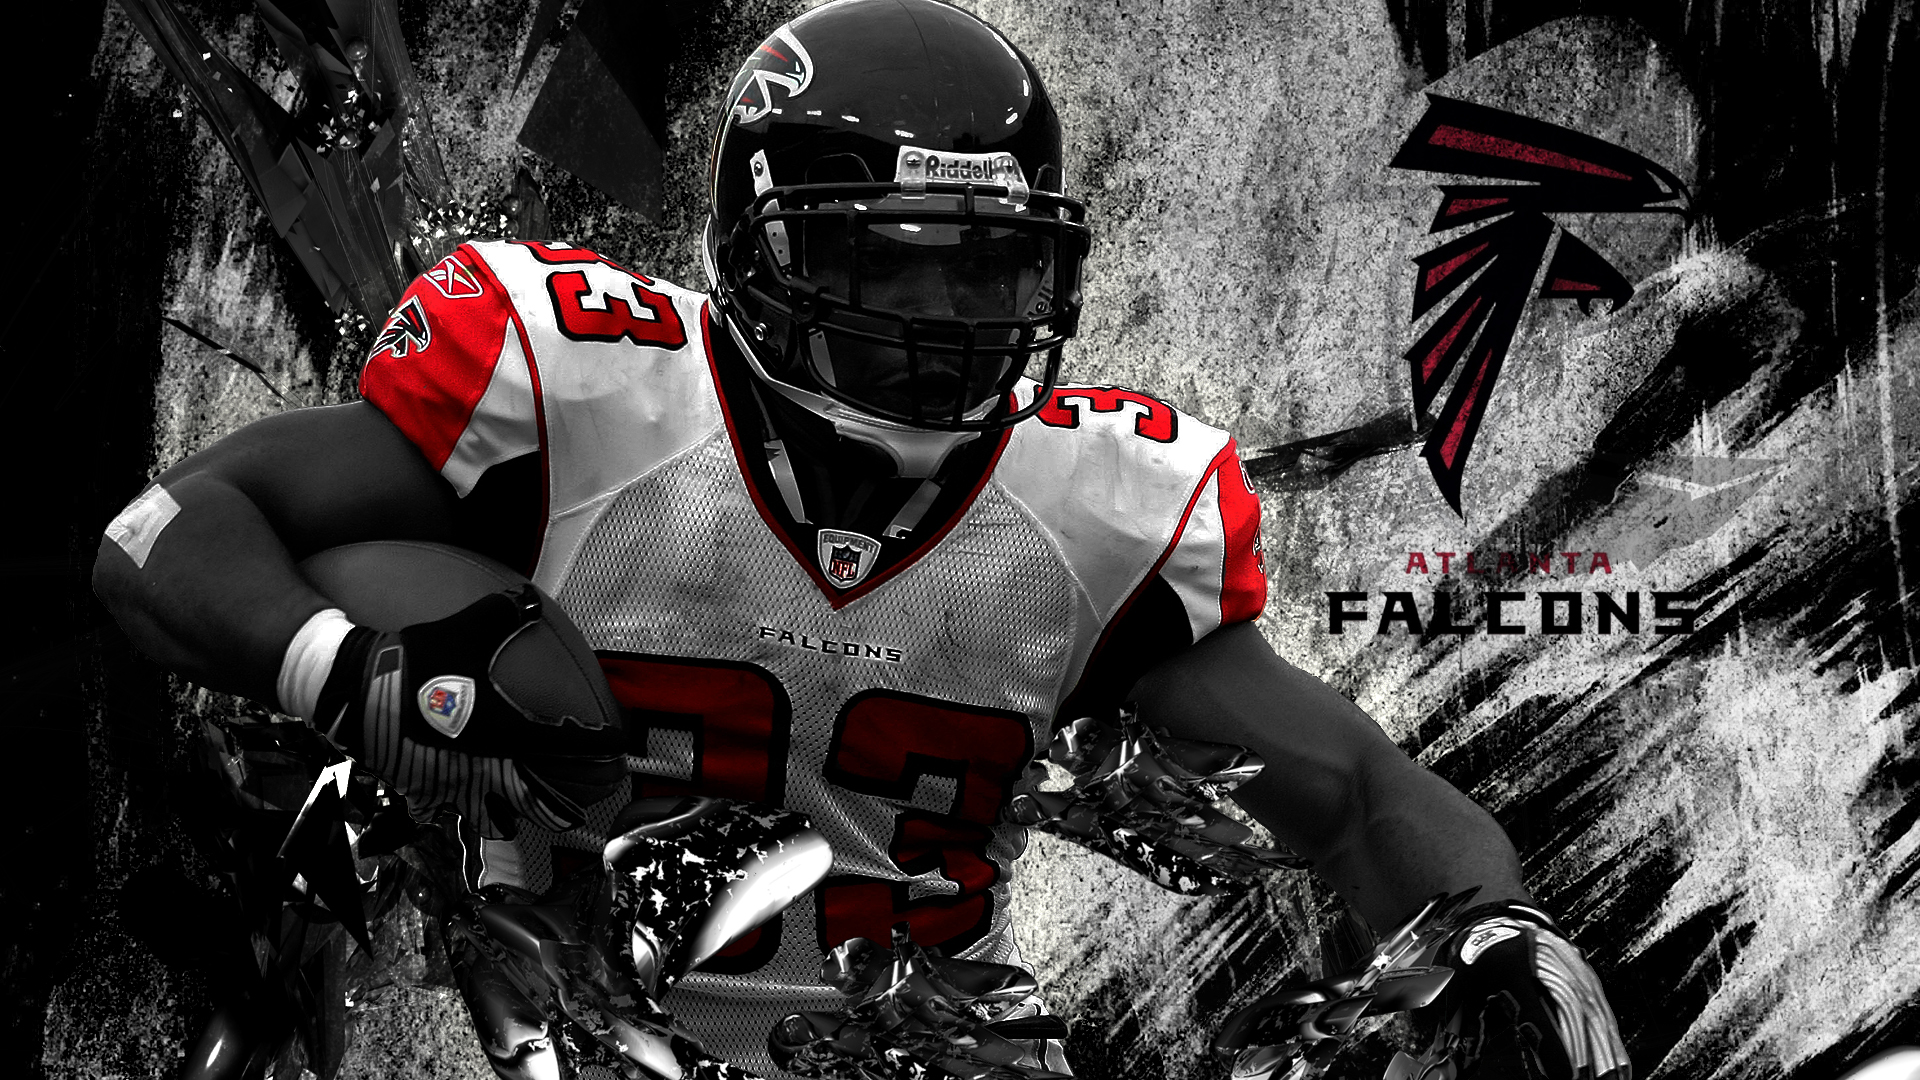 Atlanta Falcons 2018 Wallpaper Hd 64 Images: Nike HD Wallpaper